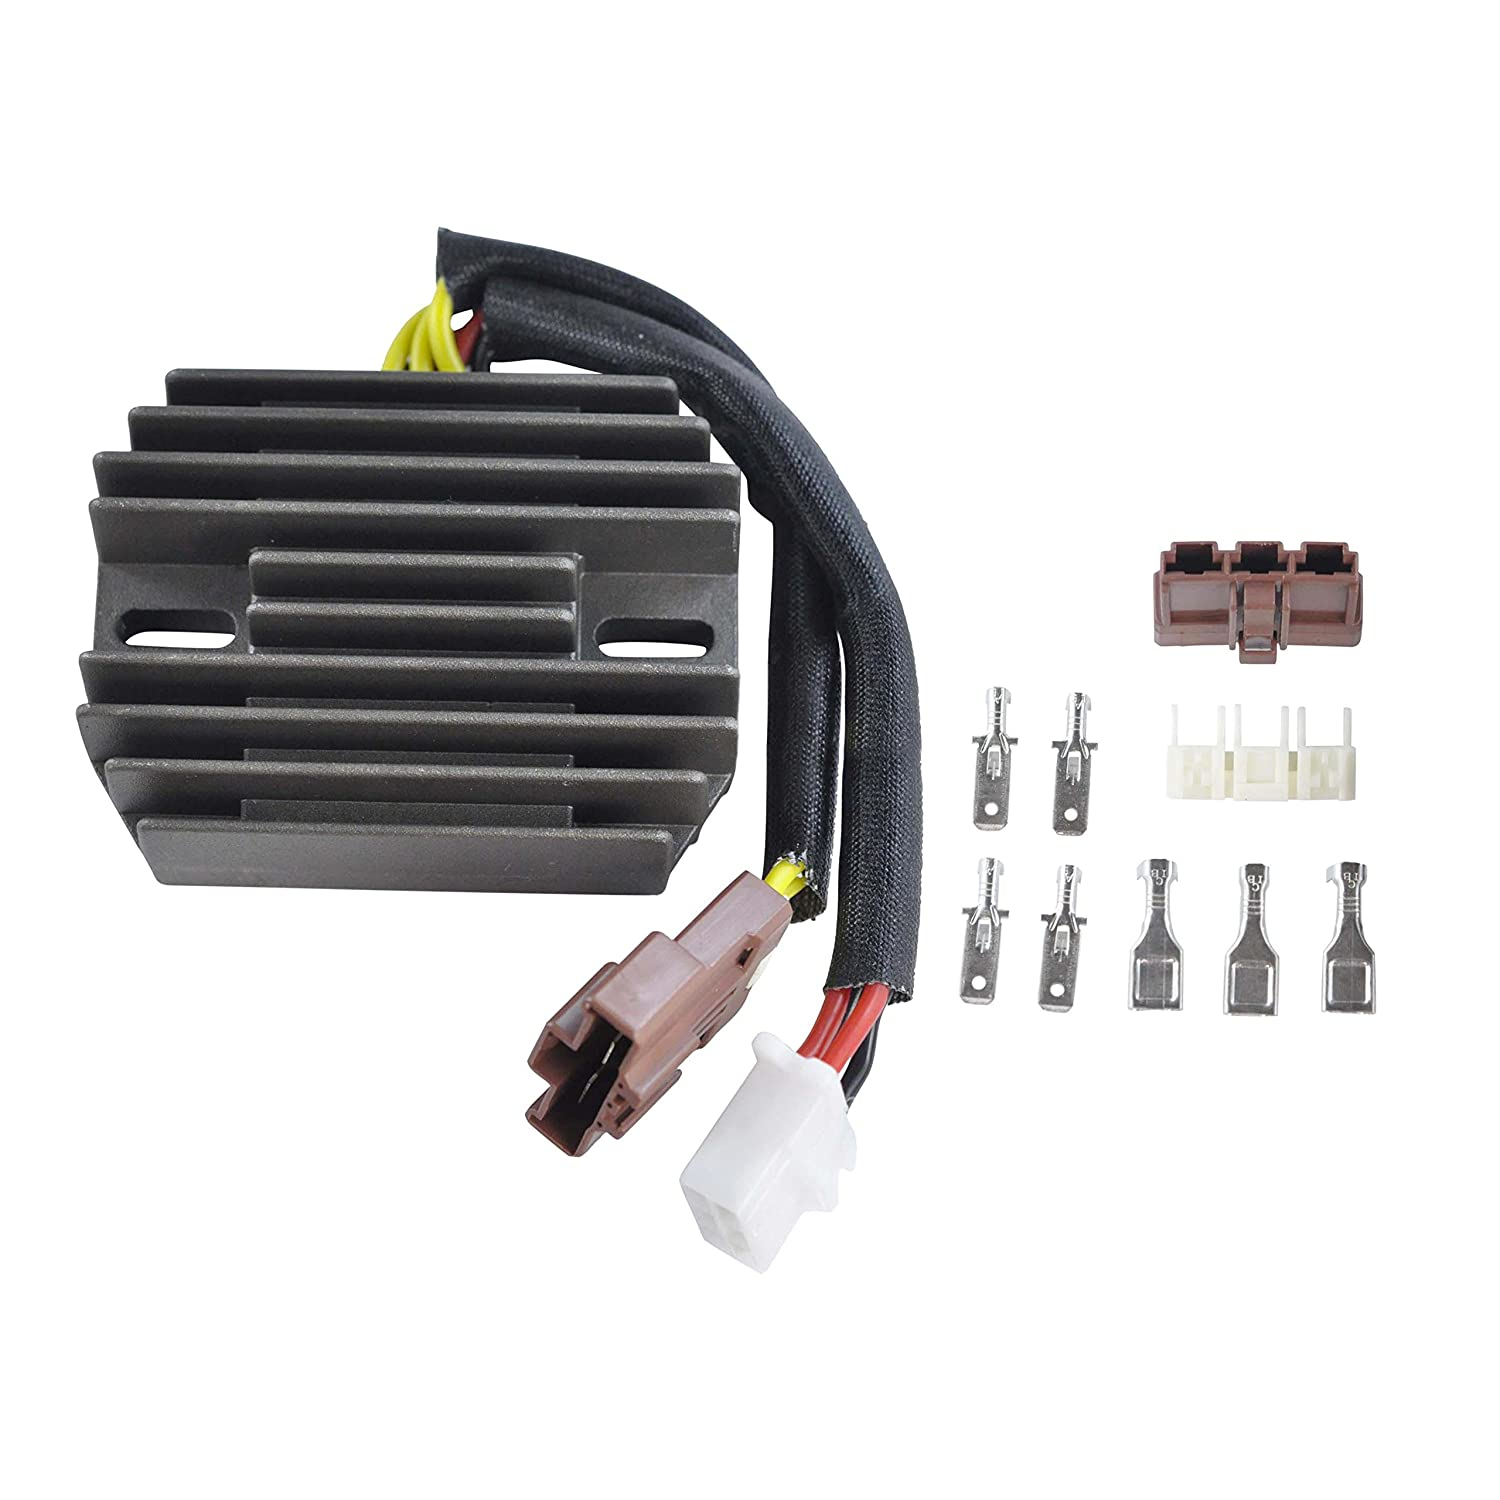 Voltage Regulator Rectifier For Aprilia Etv Caponord Rst Charging System Wiring And Main Power Supply Circuit Ndash 2006 Rs125 Futura Rsv R Mille Tuono 1000 1998 2010 Oem Repl Ap8124831 Ap8127144 Automotive